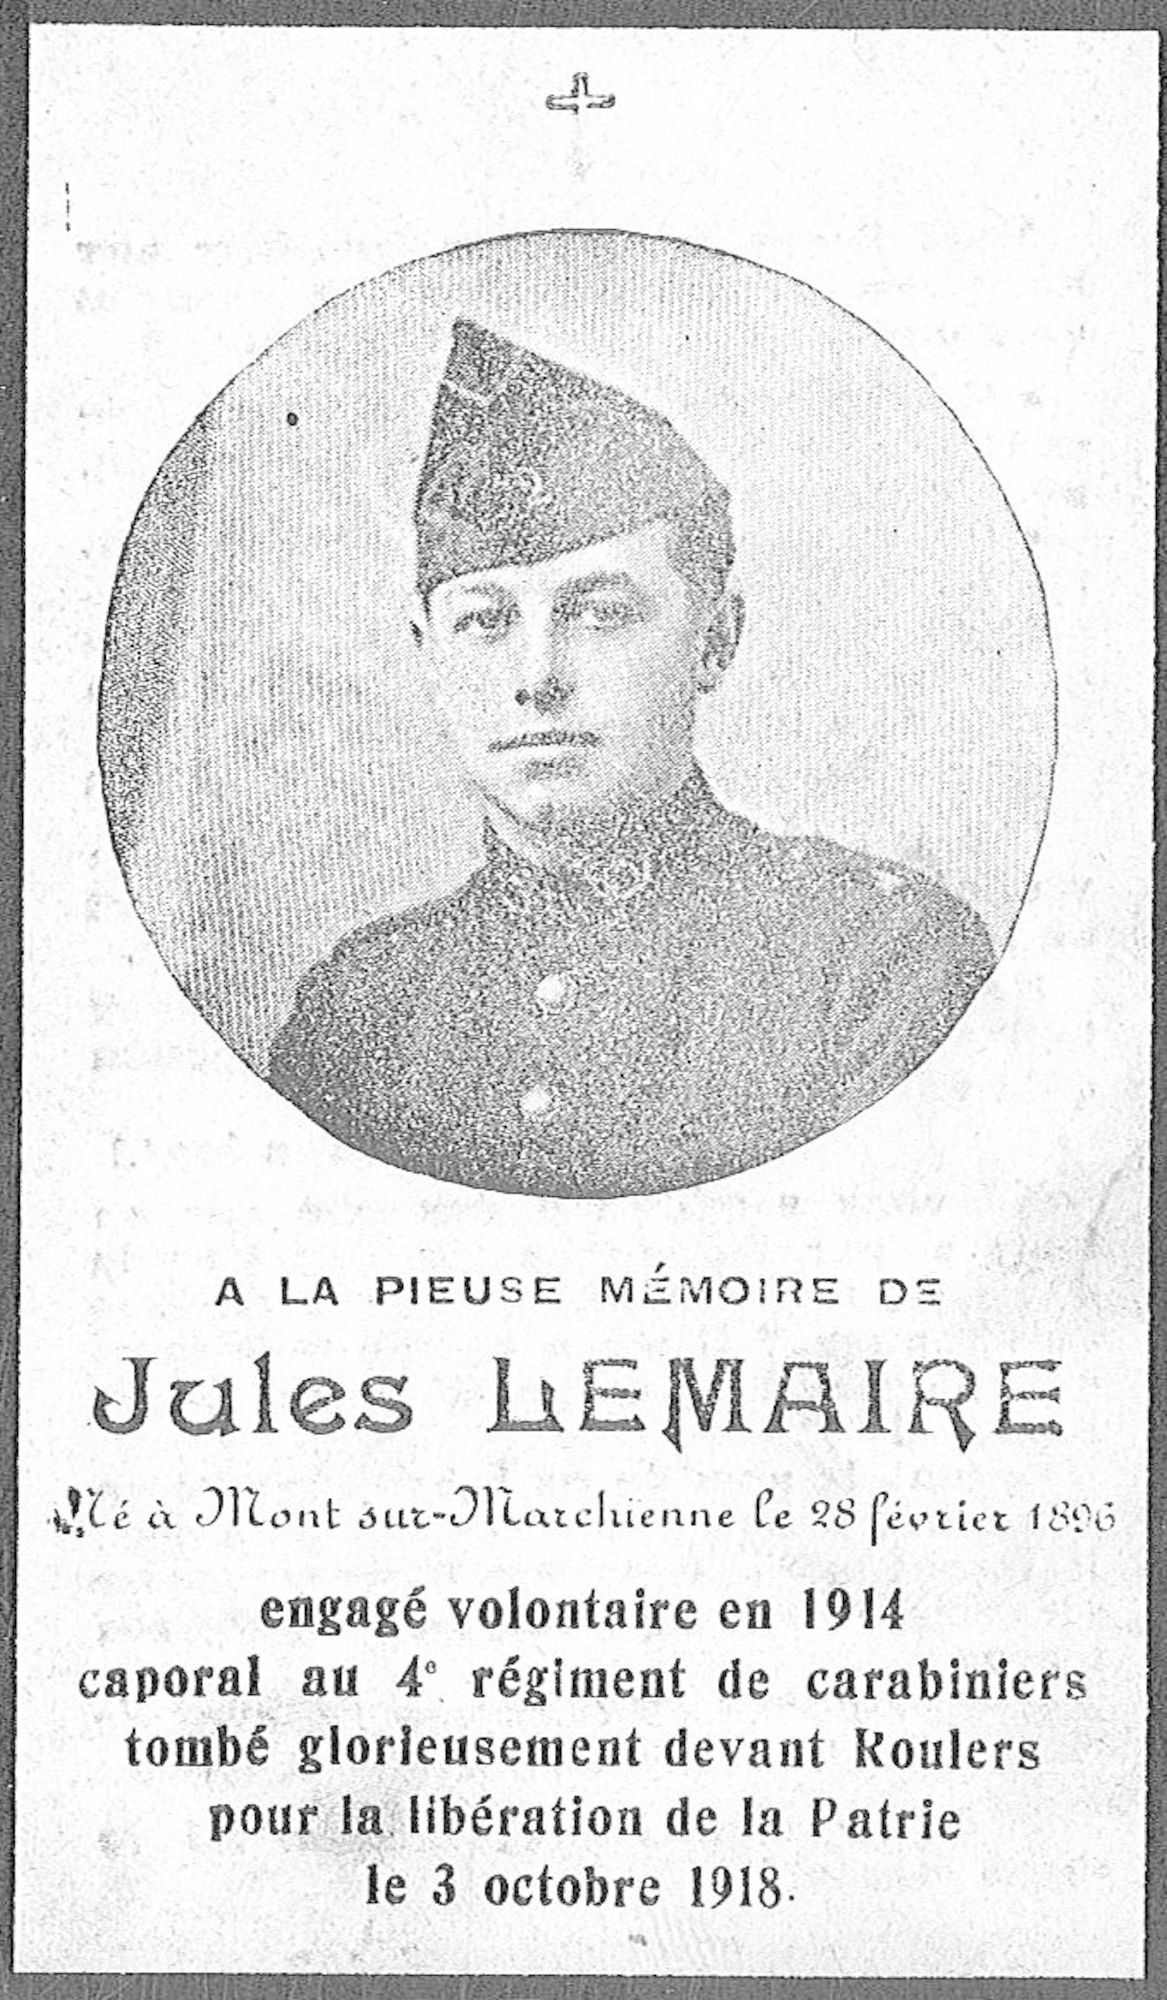 Jules Lemaire